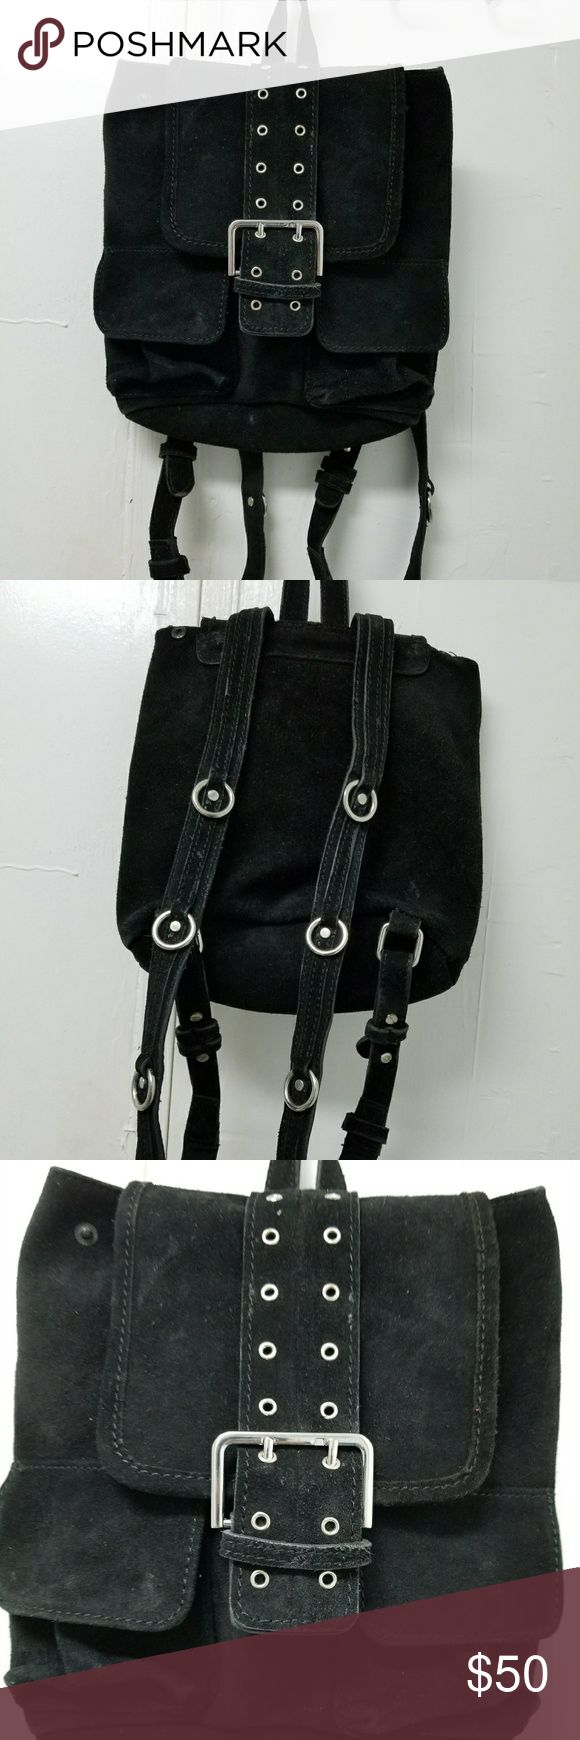 Urban outfitters backpack 100% suede. A lil dirty from the inside but can be cleaned. Final price. Urban Outfitters Bags Backpacks